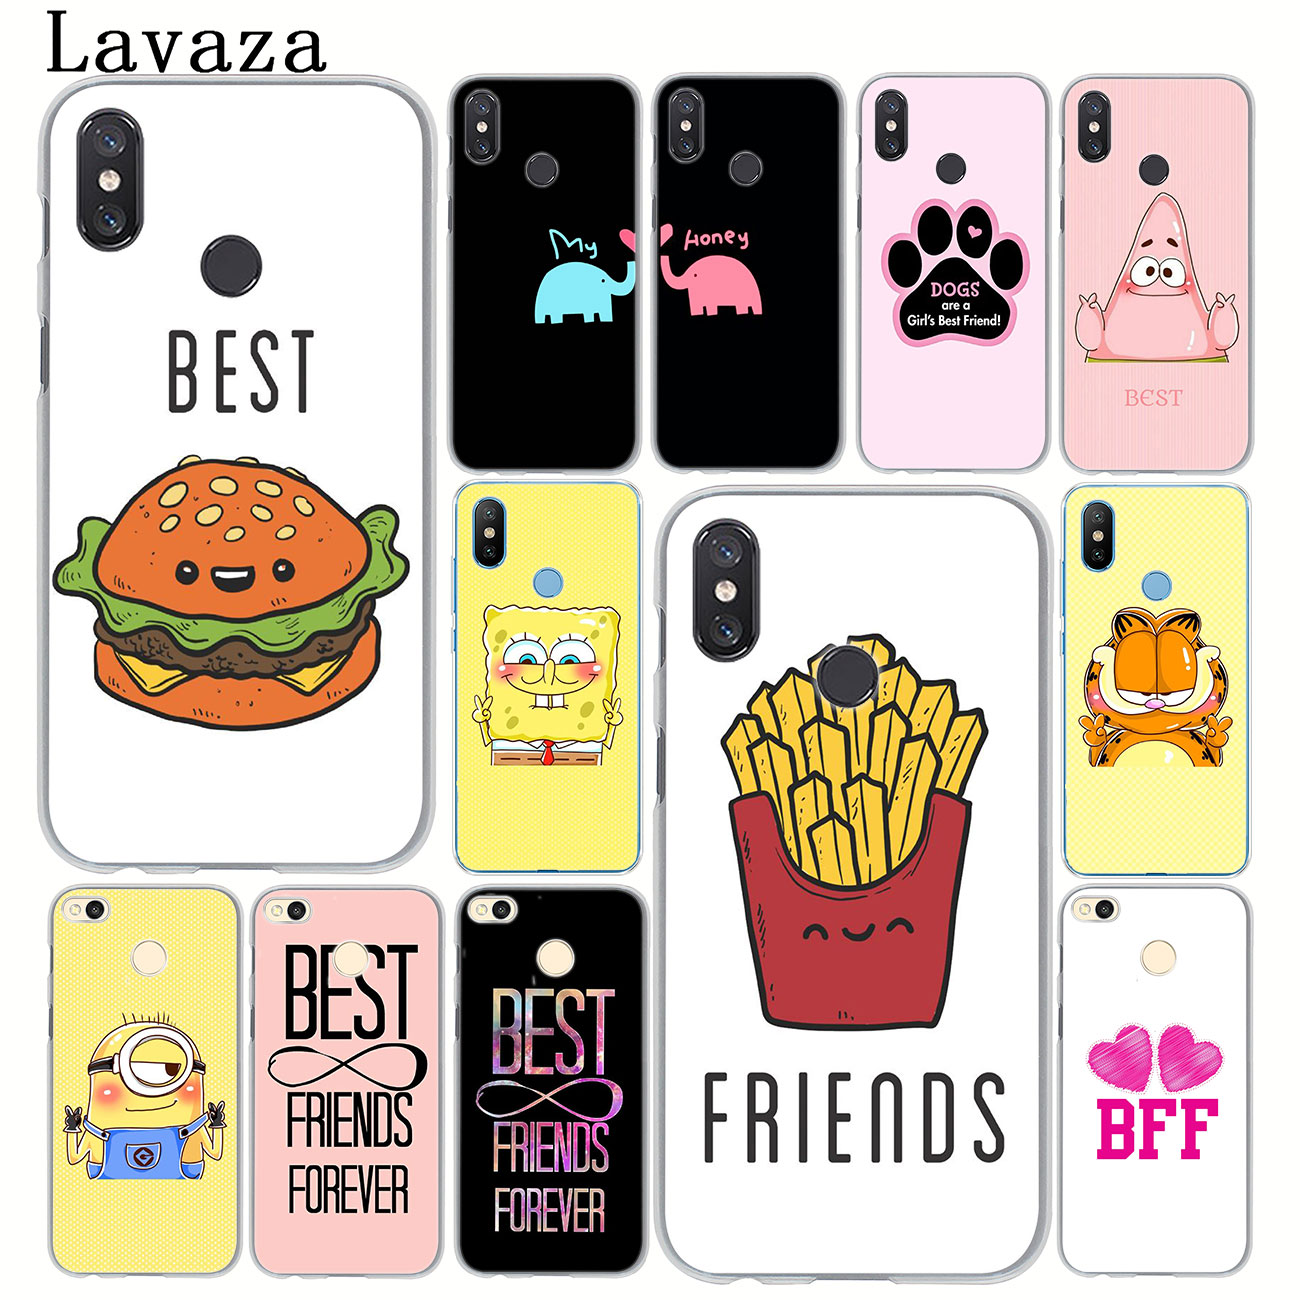 Lavaza Best Friends Girl Hard Phone Case for Xiaomi MI 9 9T A3 Pro CC9 CC9E 8 SE A2 Lite A1 pocophone f1 6 6X 5S 5X MAX 3 Cover image